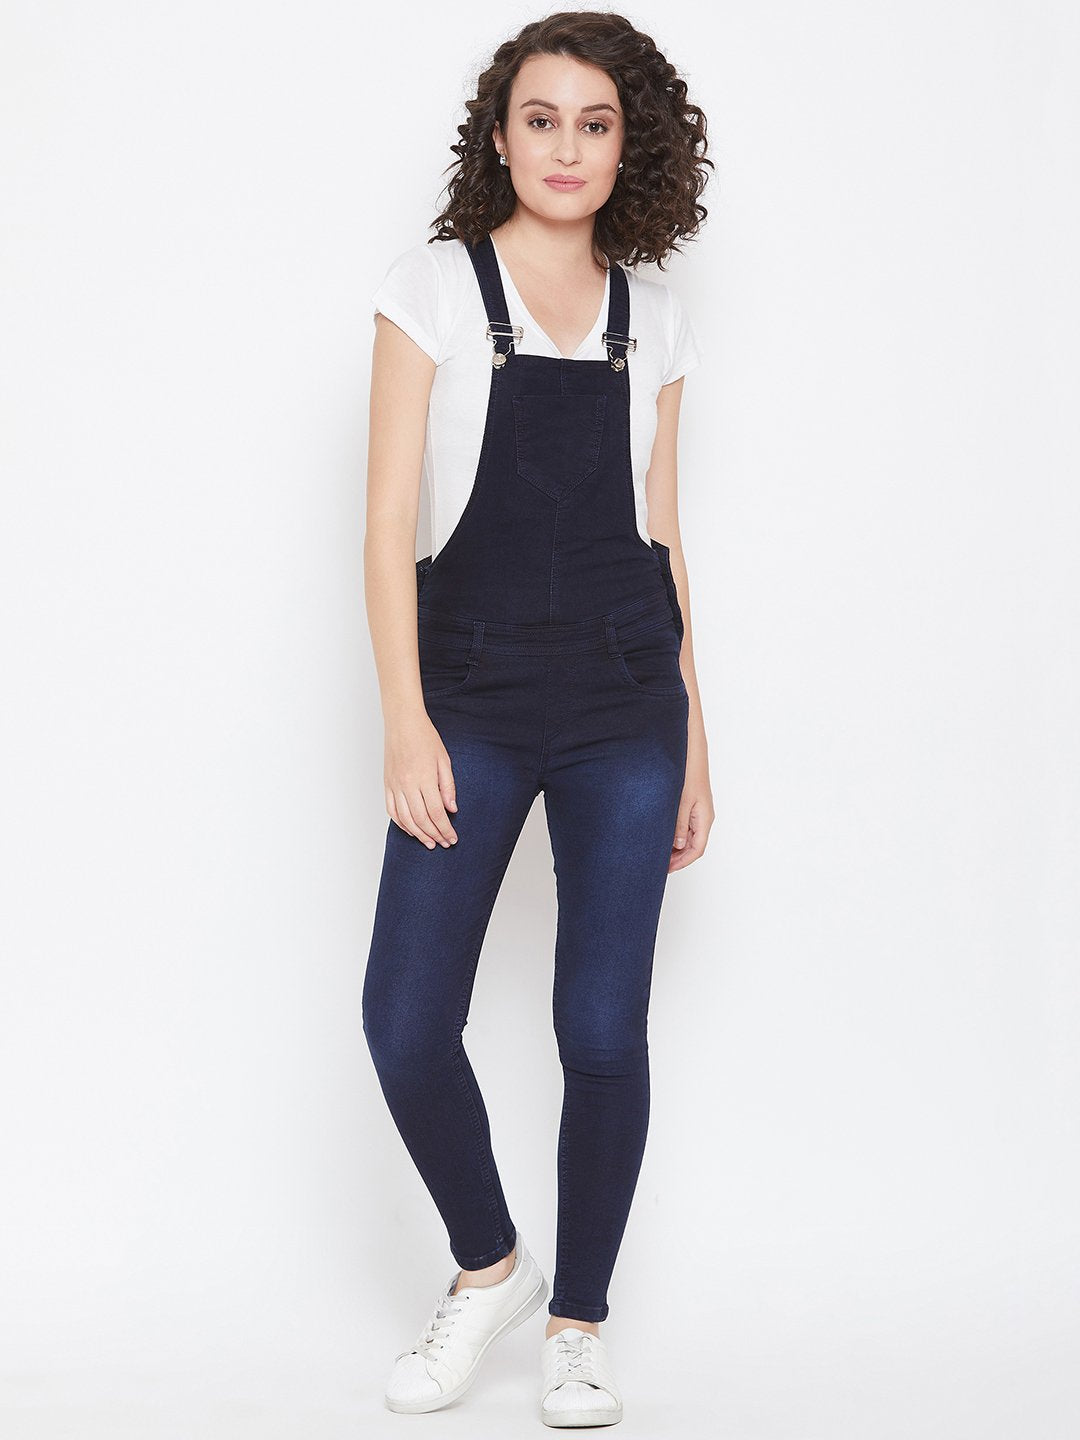 Slim Fit Stretchable Blue Dungarees - NiftyJeans